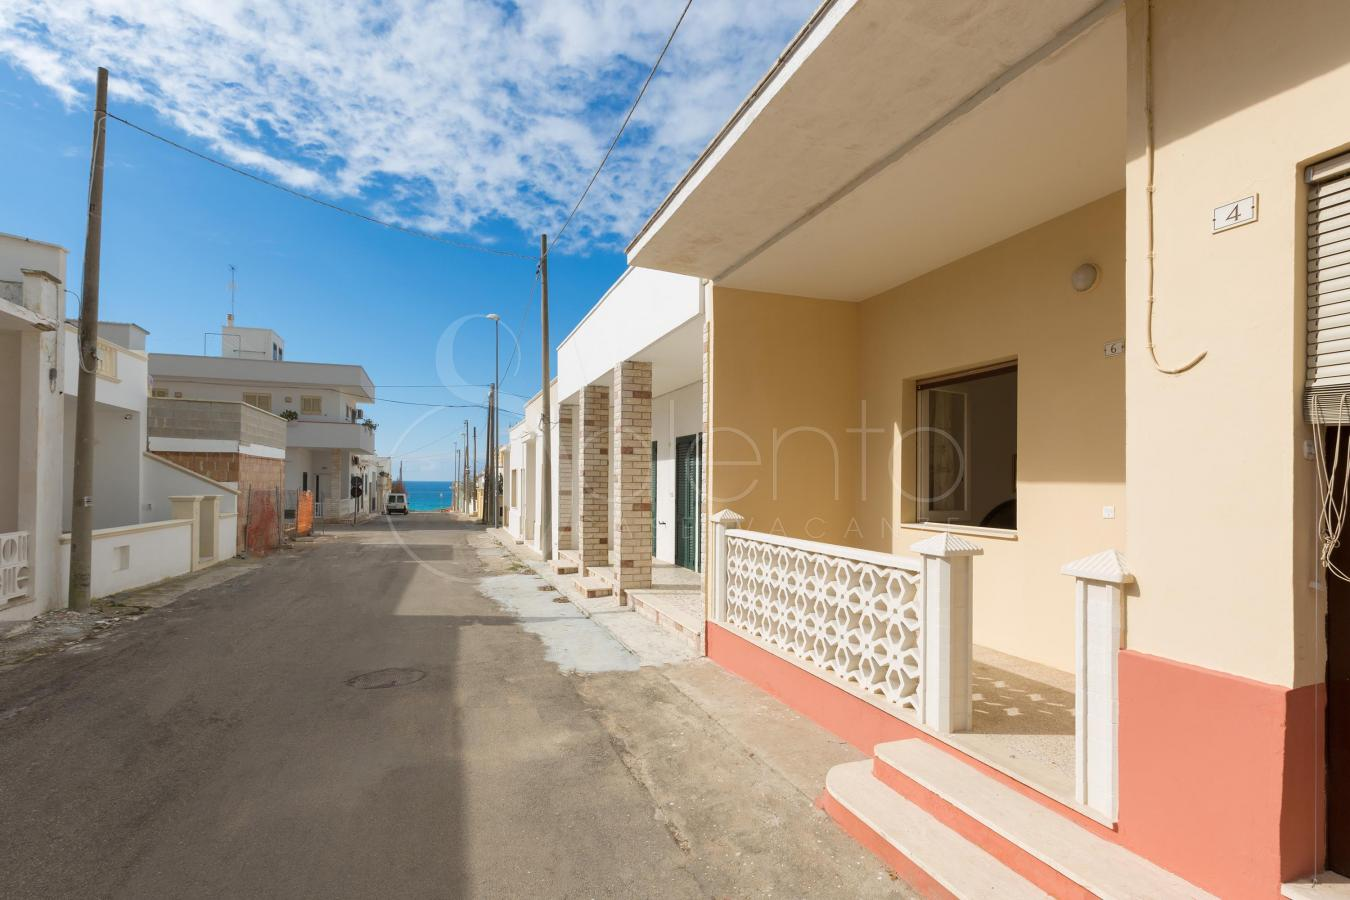 holiday homes - Mancaversa ( Gallipoli ) - Trilo Caselle